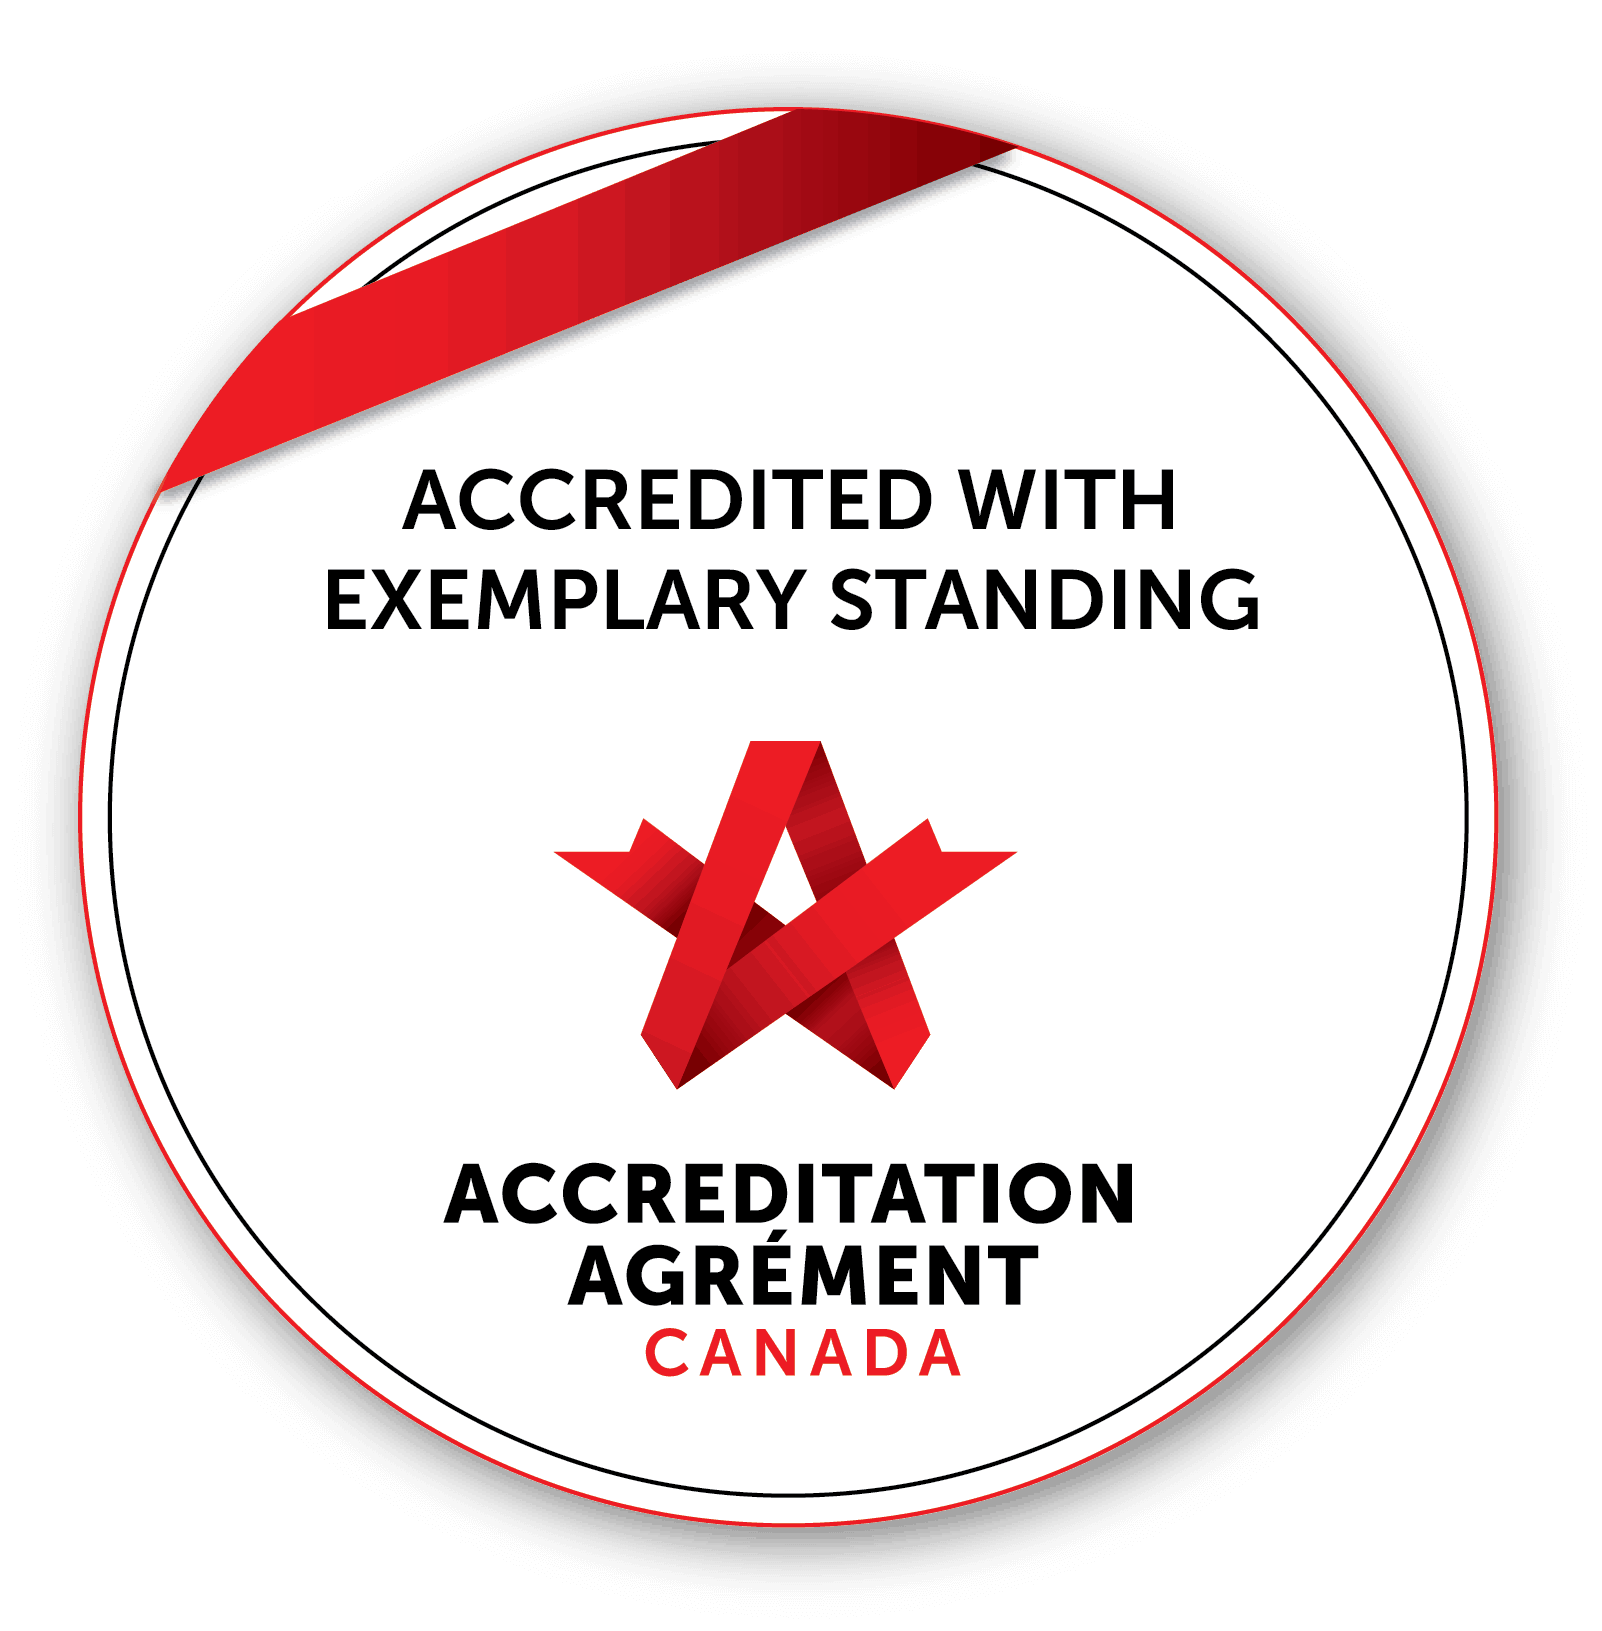 Accreditation with Exemplary Standing